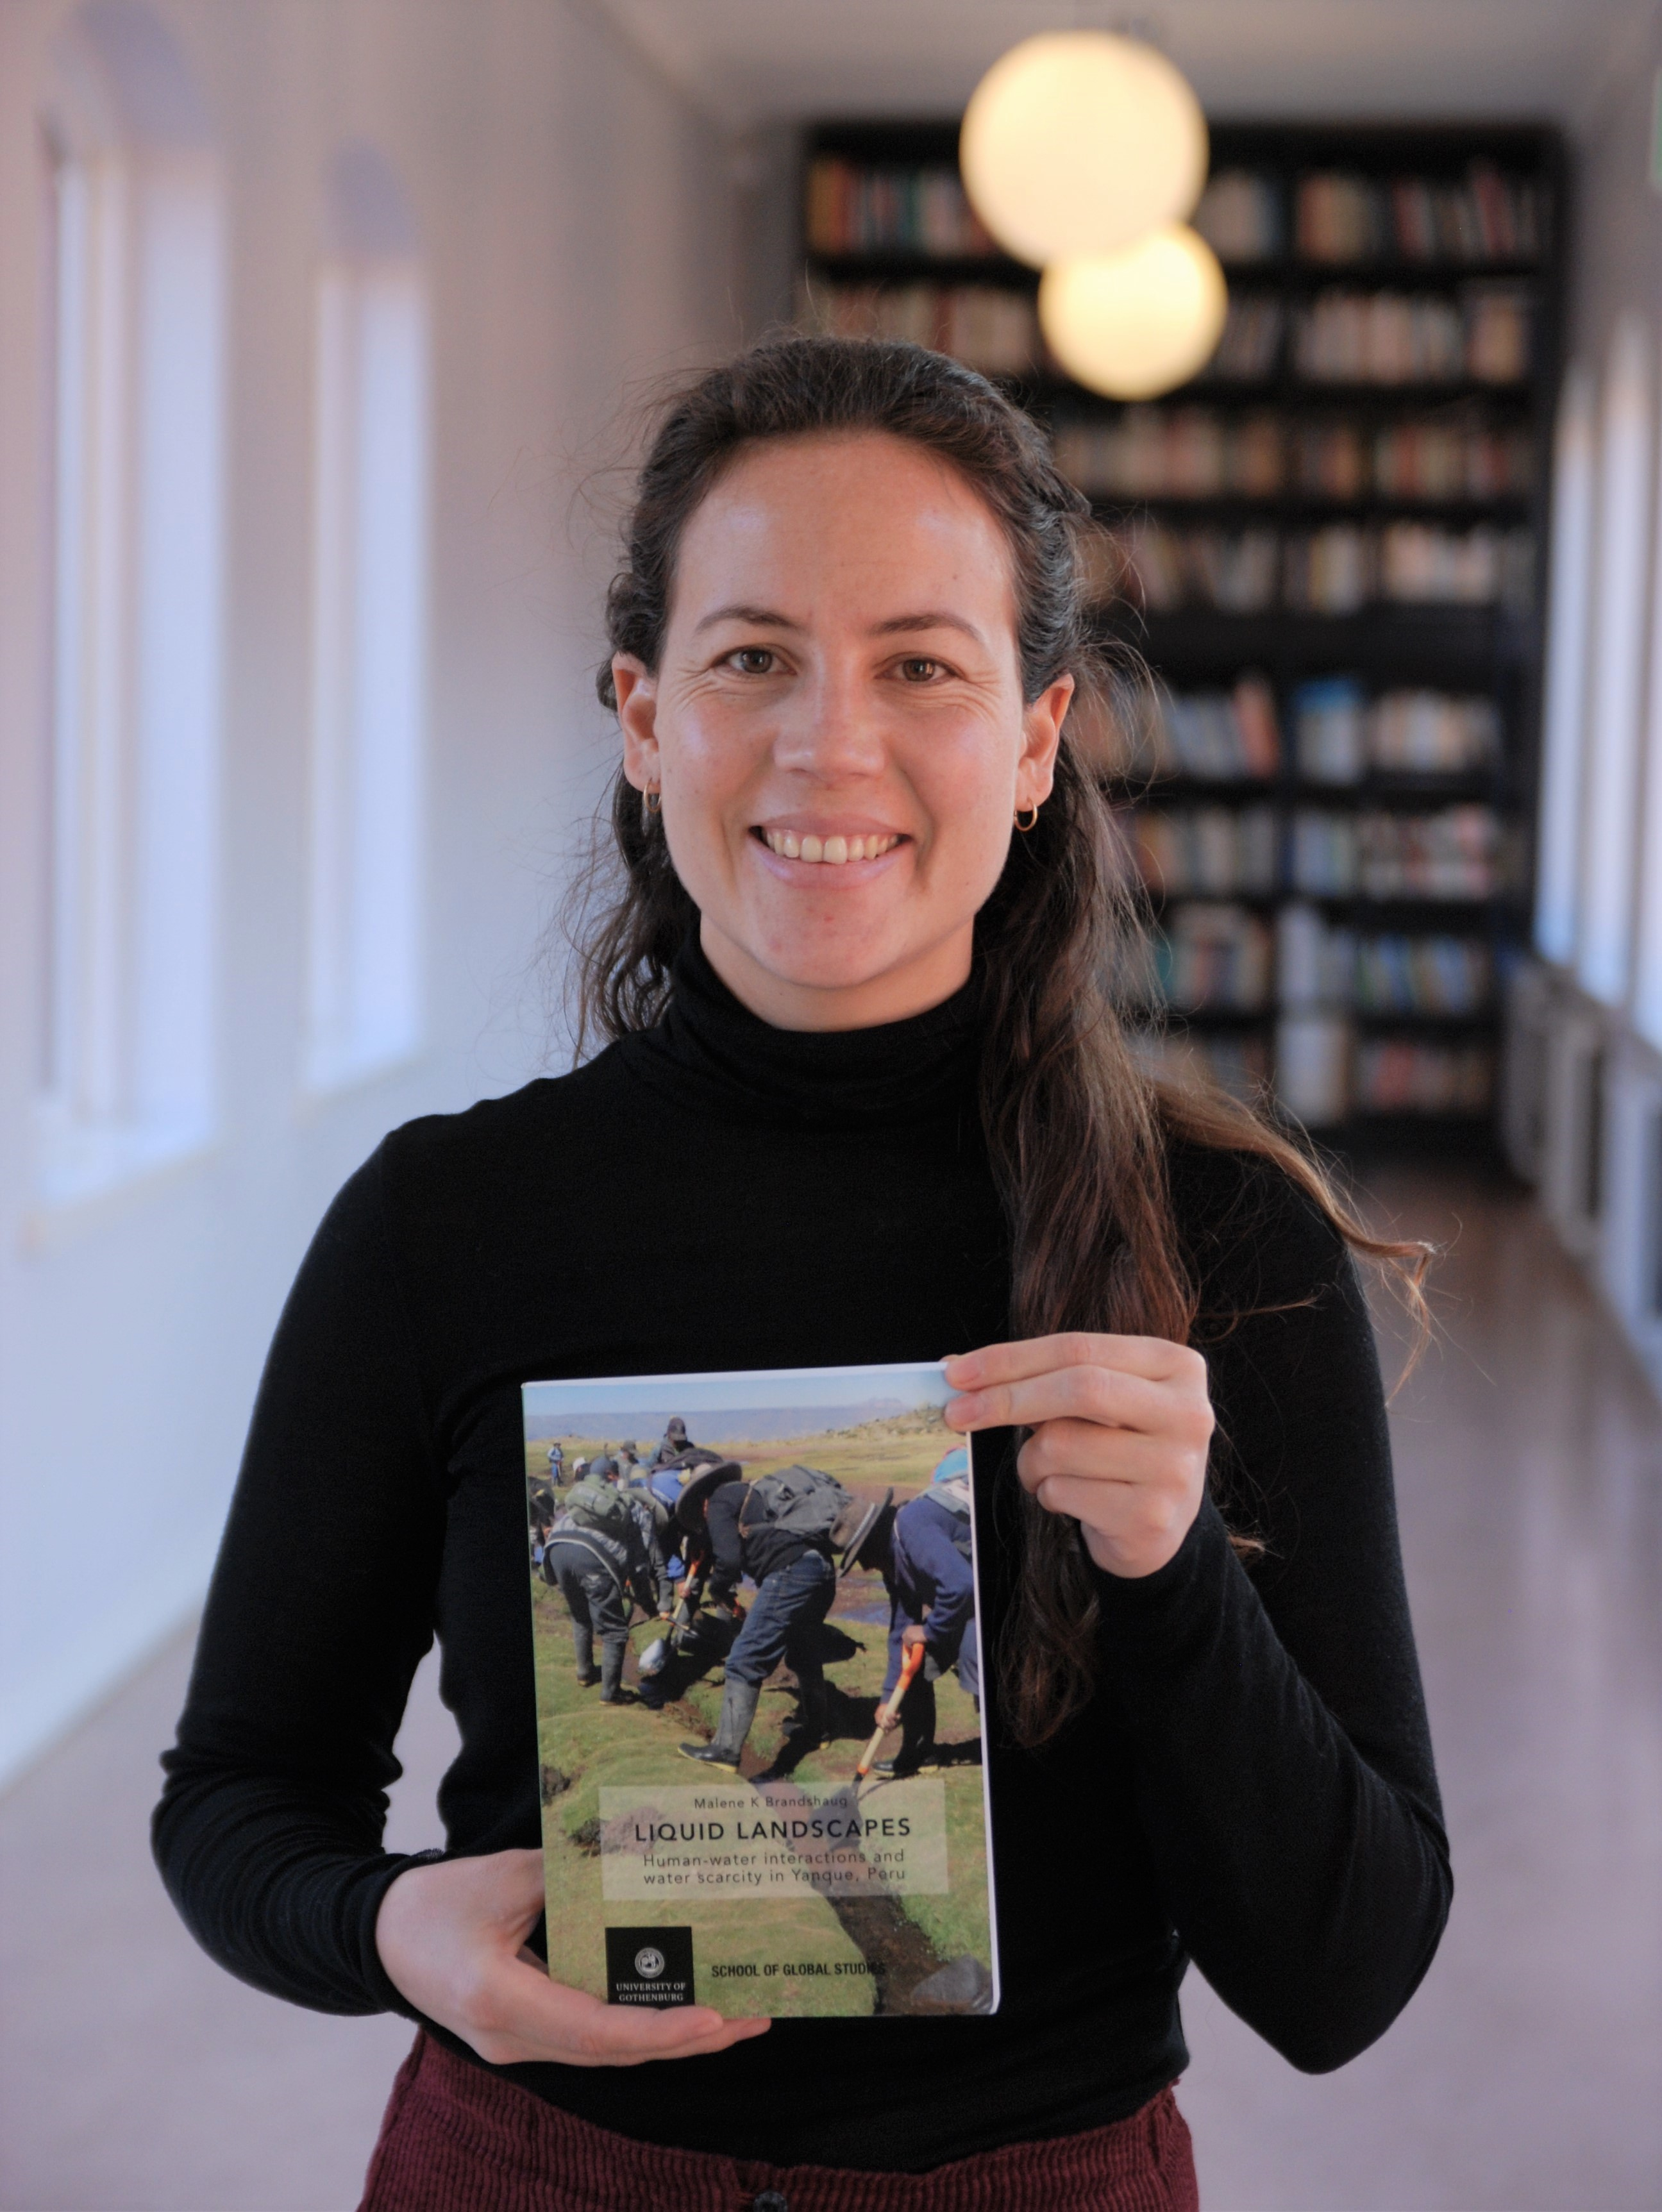 Malene K Brandshaug with her PhD thesis 'Liquid landscapes: Human-water interactions and water scarcity in Yanque, Peru